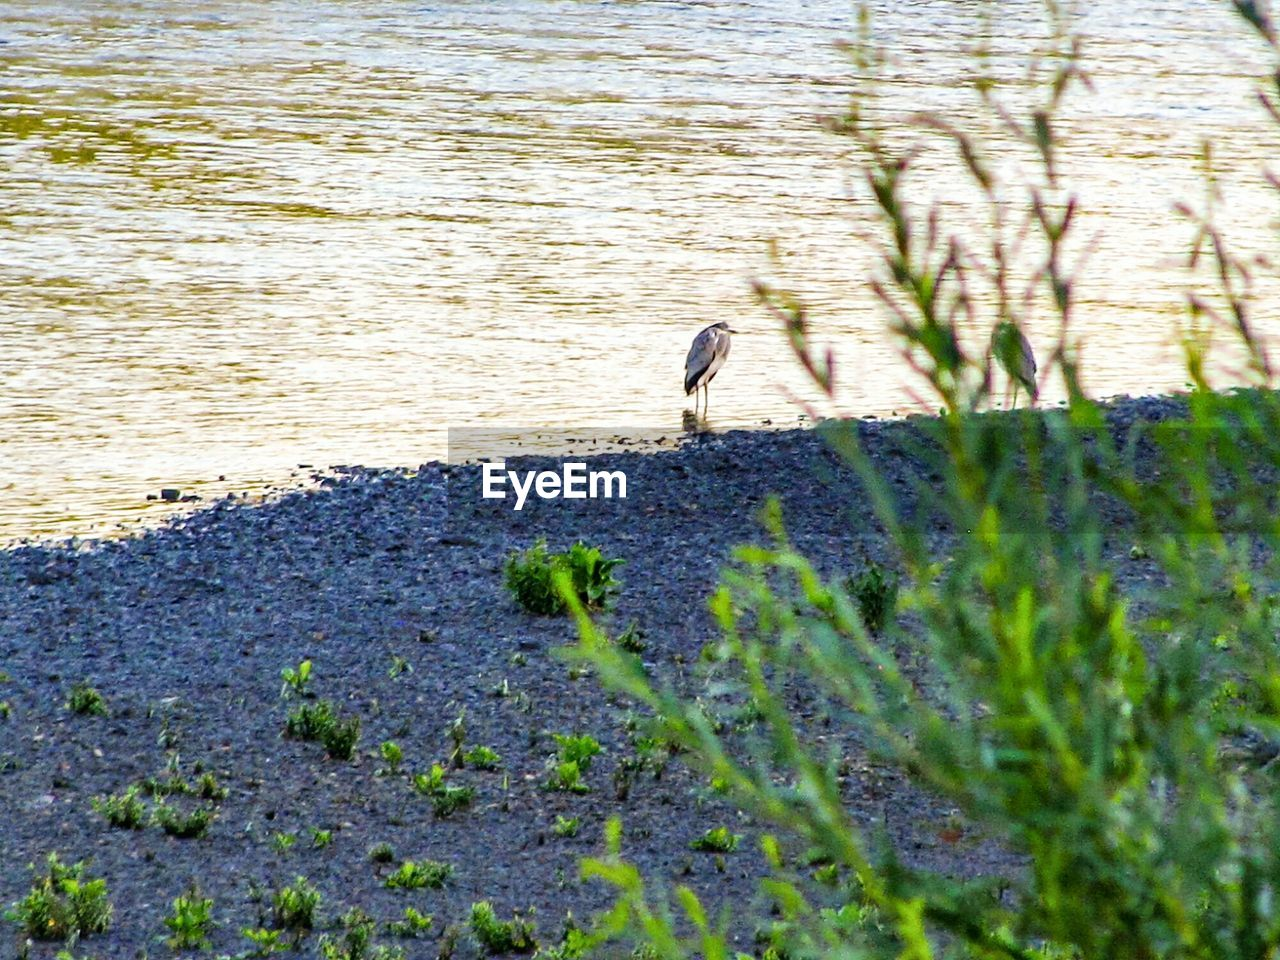 animal wildlife, plant, animals in the wild, water, nature, animal, one animal, animal themes, day, bird, vertebrate, land, beach, no people, selective focus, lake, sunlight, beauty in nature, outdoors